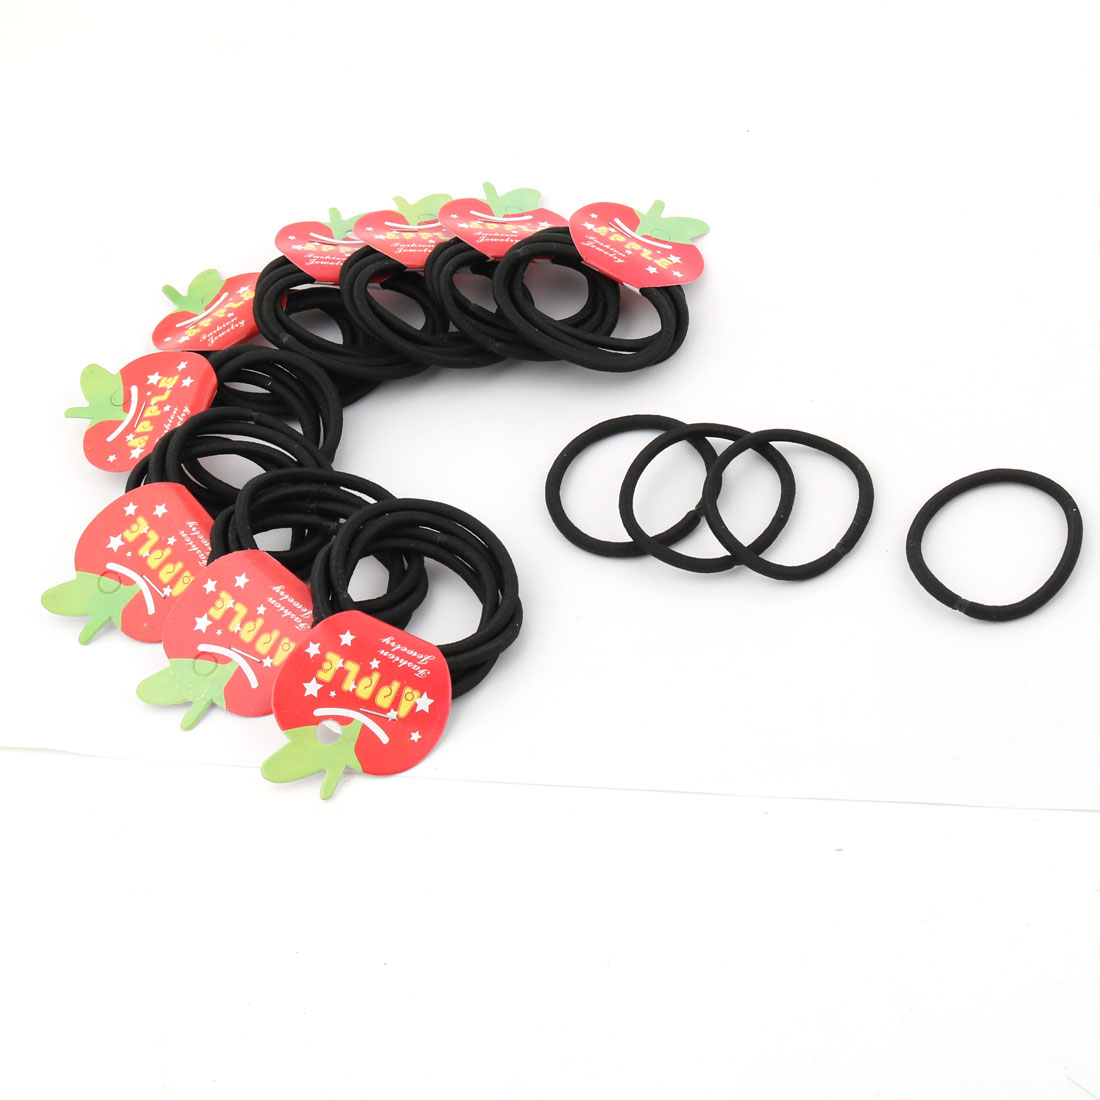 Household Woman Elastic Hair Band Ties Rope Scrunchie Ponytail Holder Black 40 PCS